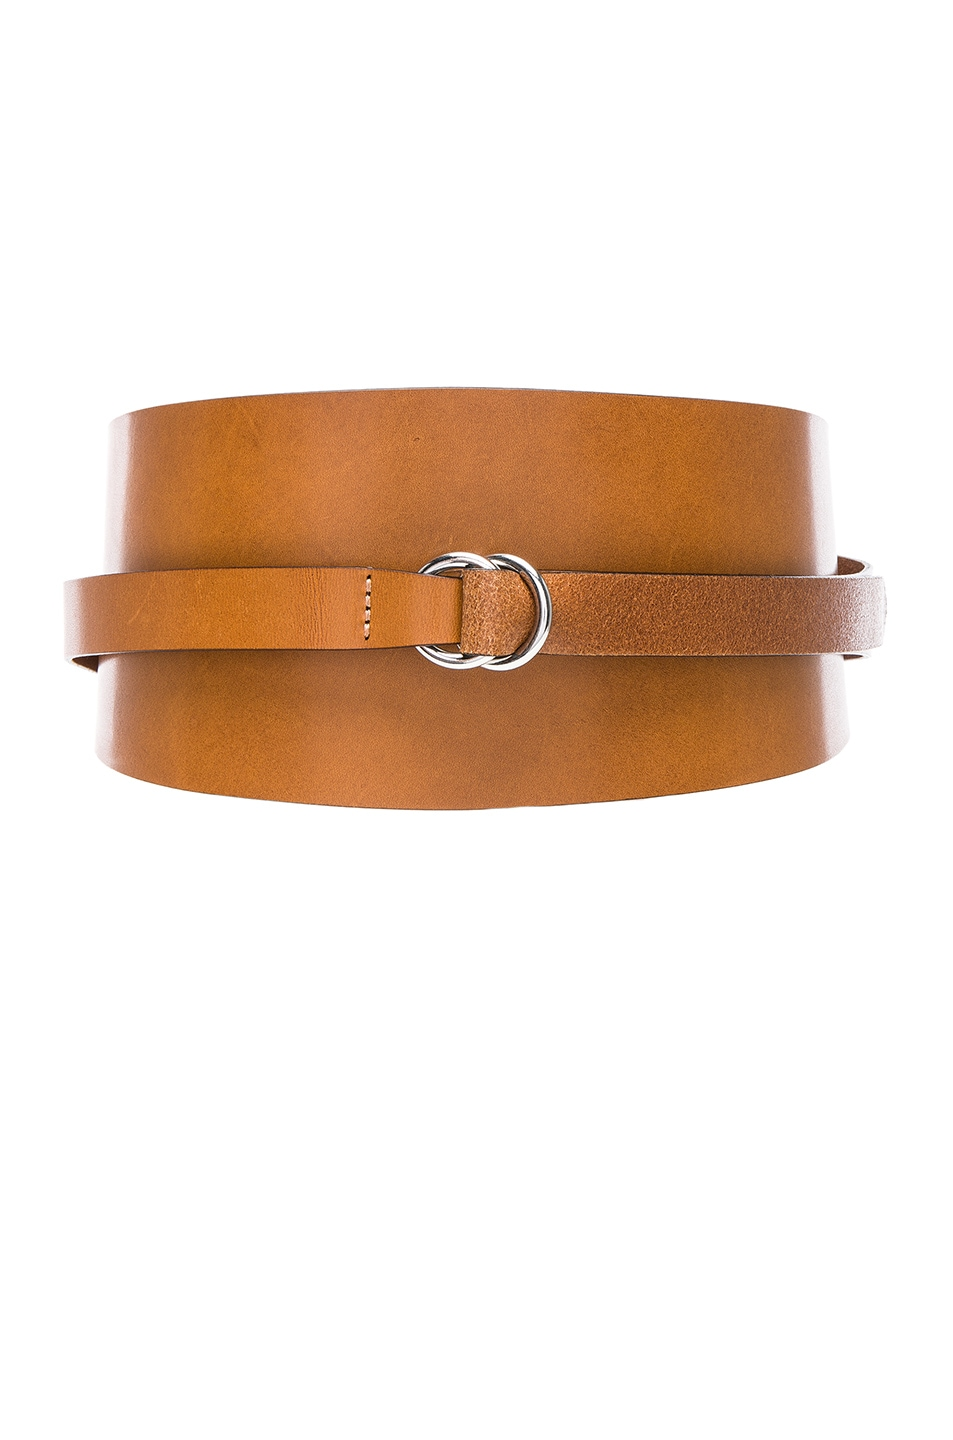 Cajou Leather Waist Belt, Brown